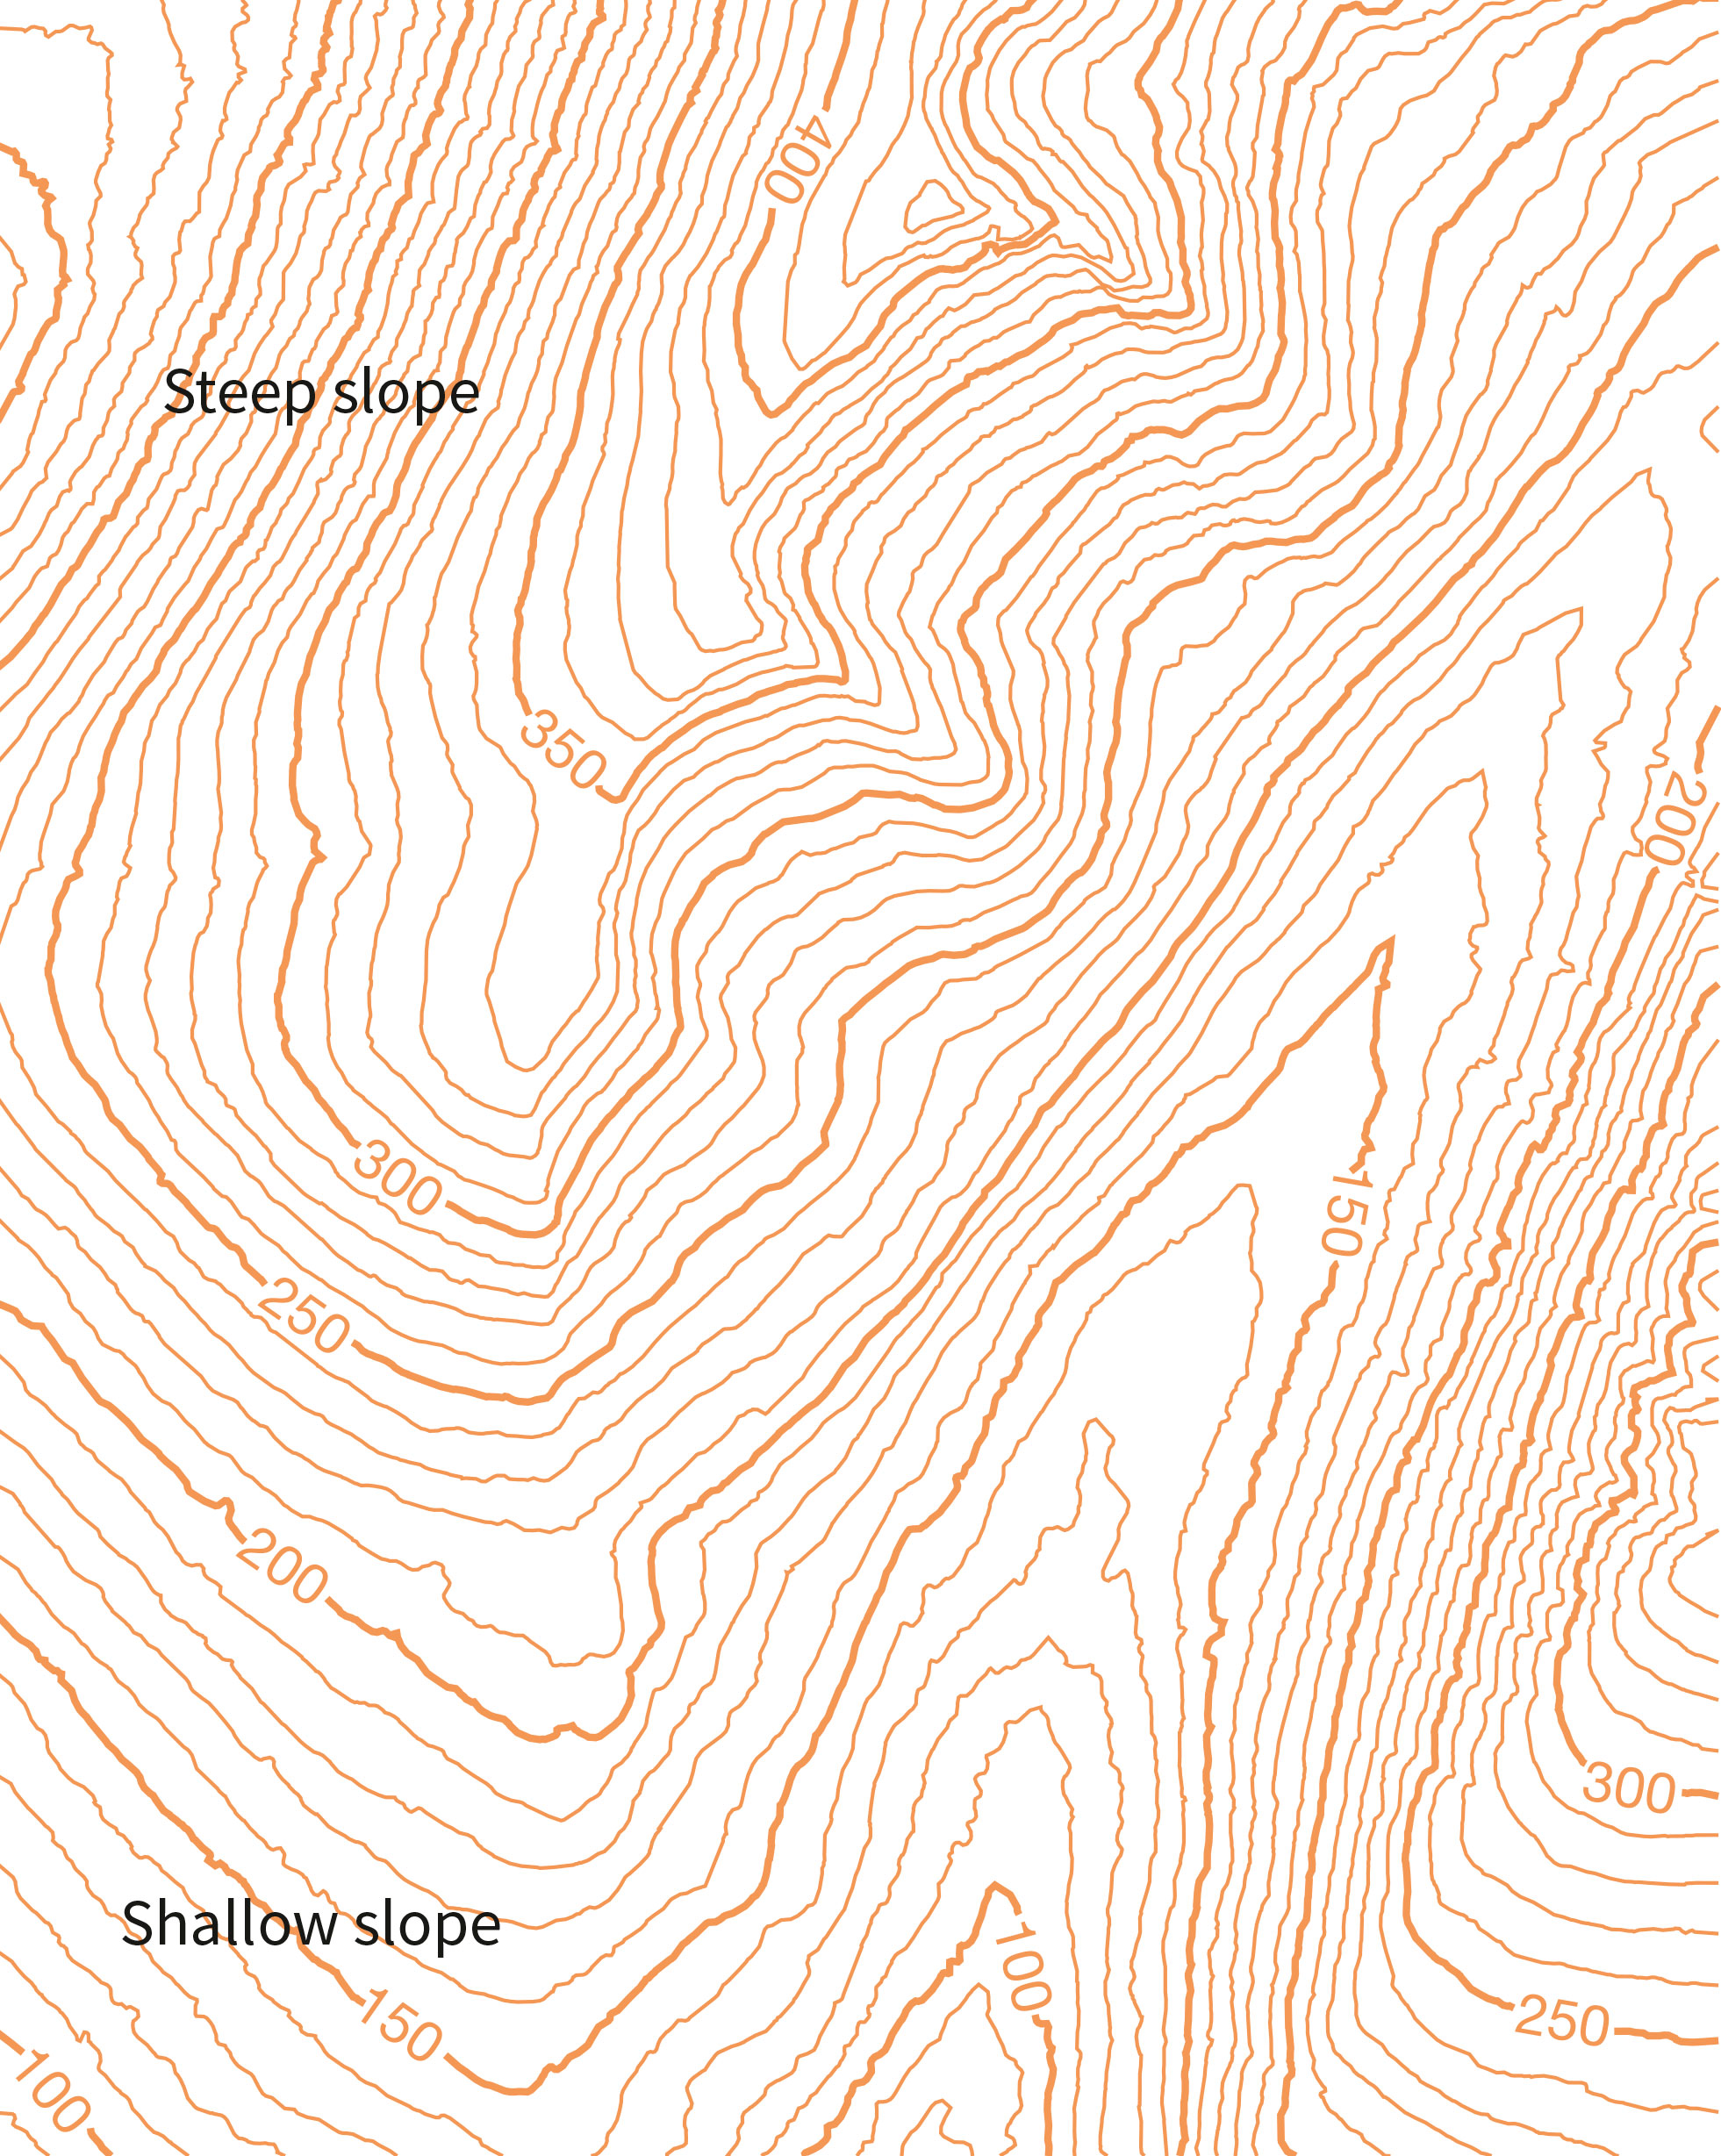 The Close Together Contours In The Top Left Show A Steep Slope A Beginners  Guide To